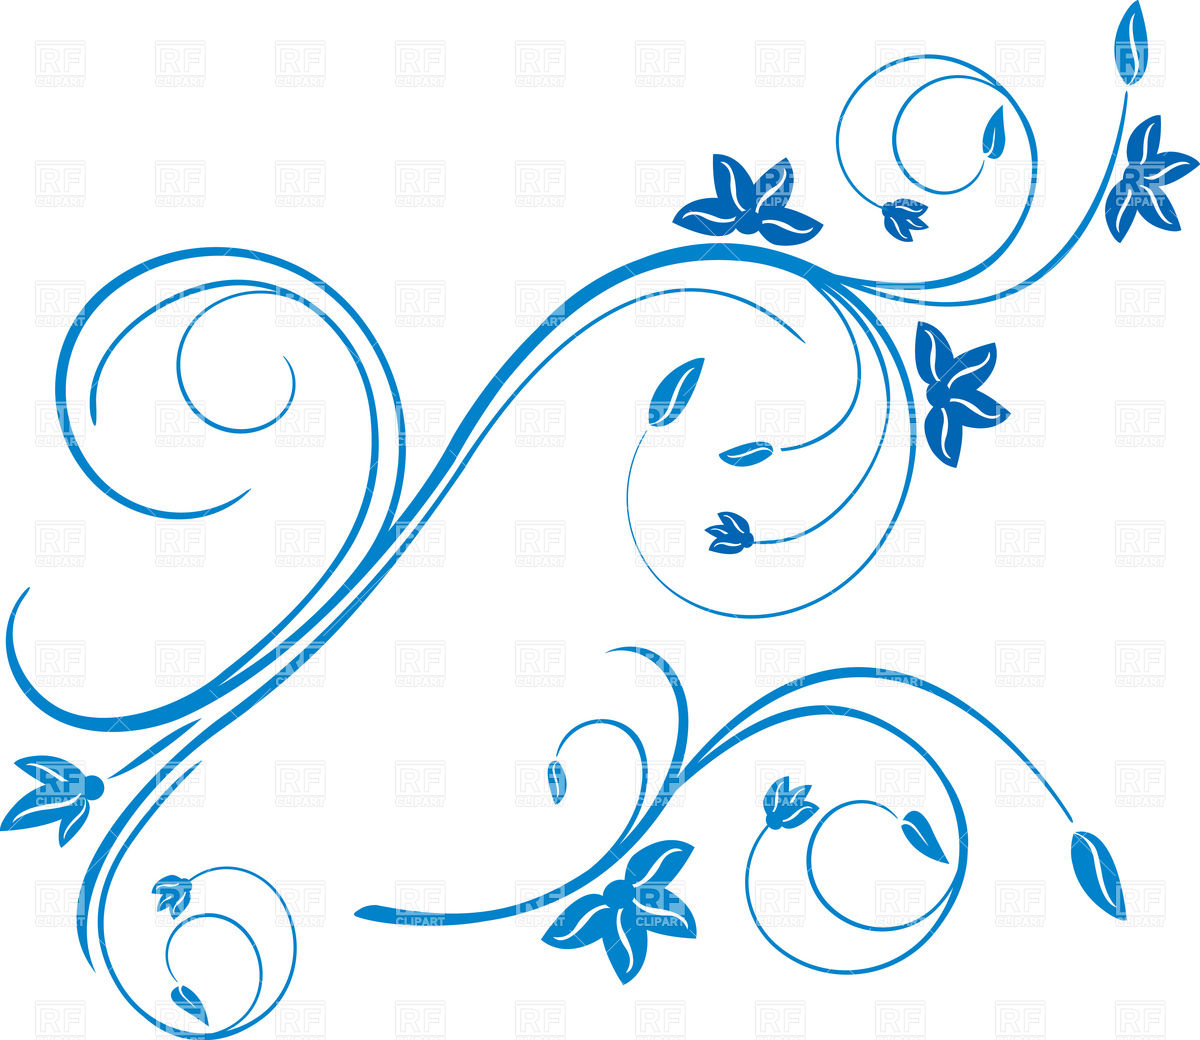 Symbolic curls and flowers decor Vector Image #8501.